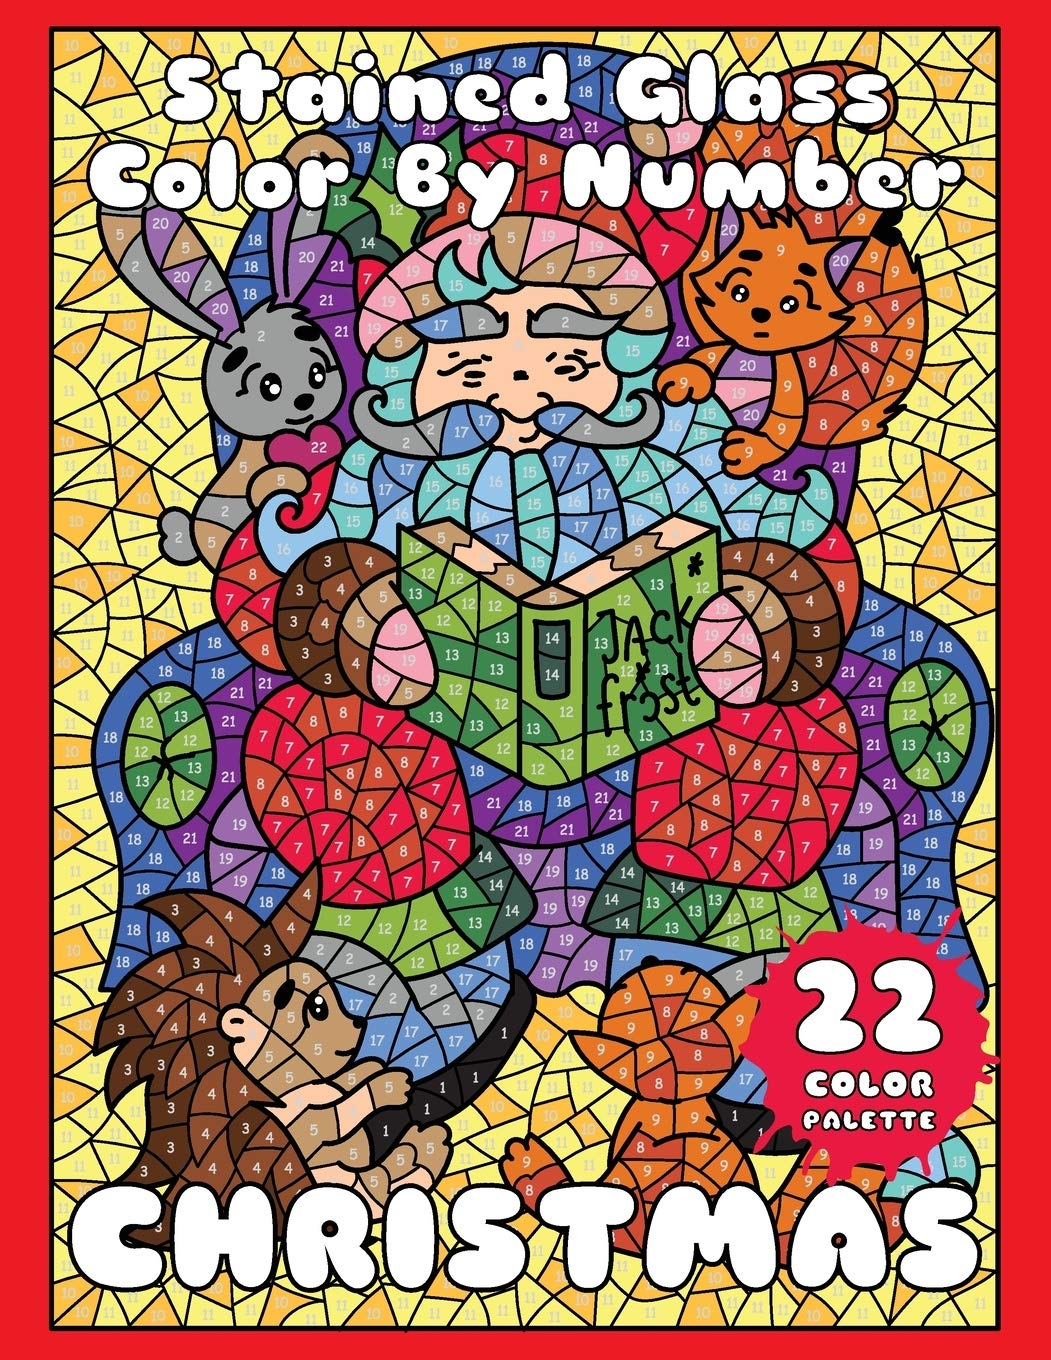 Amazon Com Christmas Stained Glass Color By Number Mosaic Color By Number Book For Adults Relaxation And Stress Relief Mosaic Color By Number Books 9781703071900 Drawing Sunlife Color By Number Mosaic Books